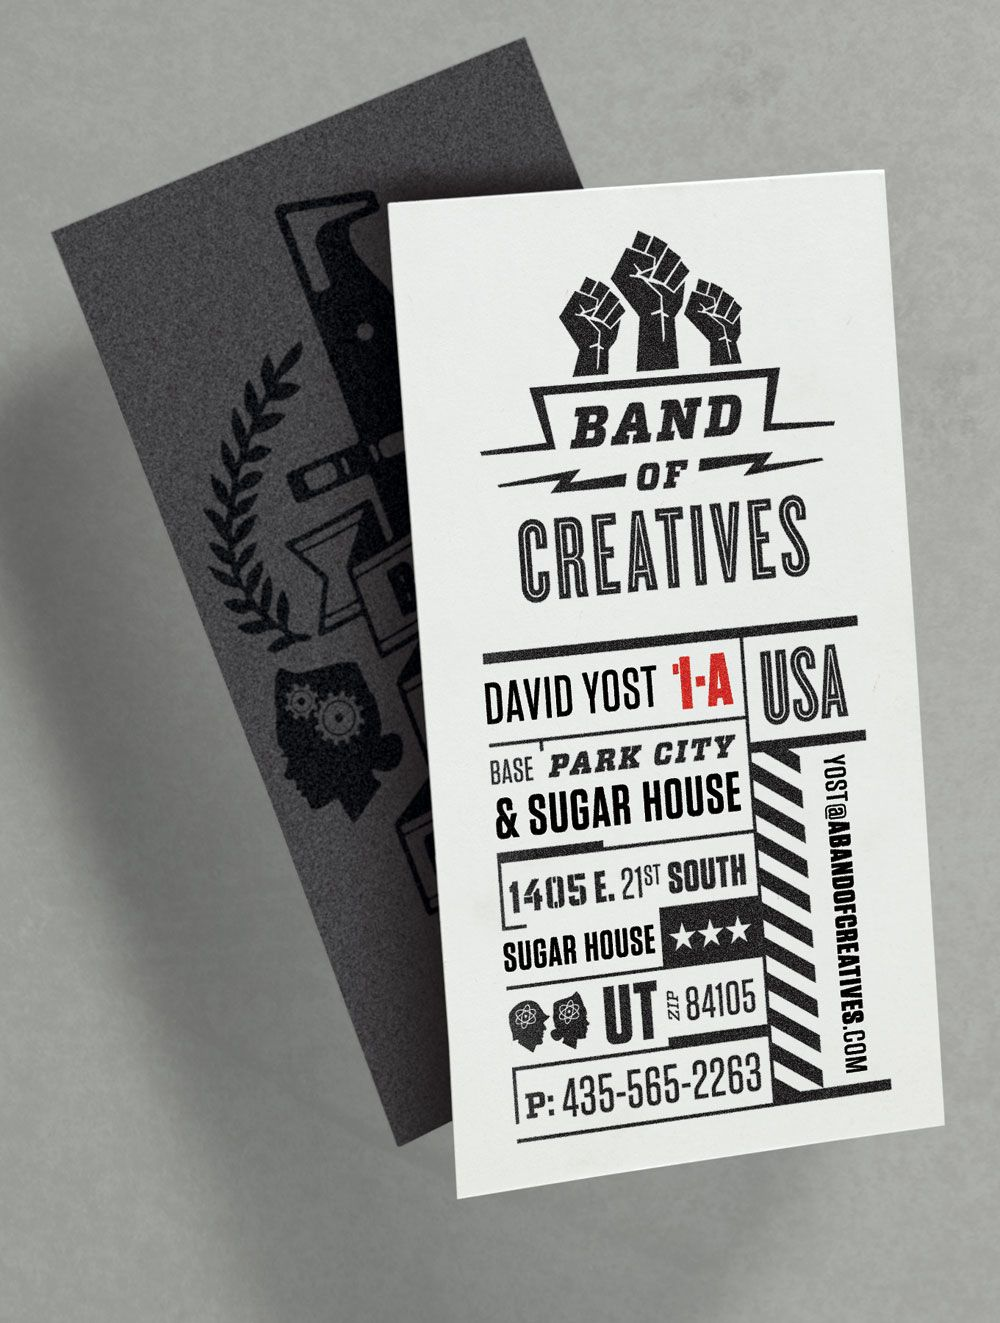 The Tenfold Collective for Band of Creatives business card design ...